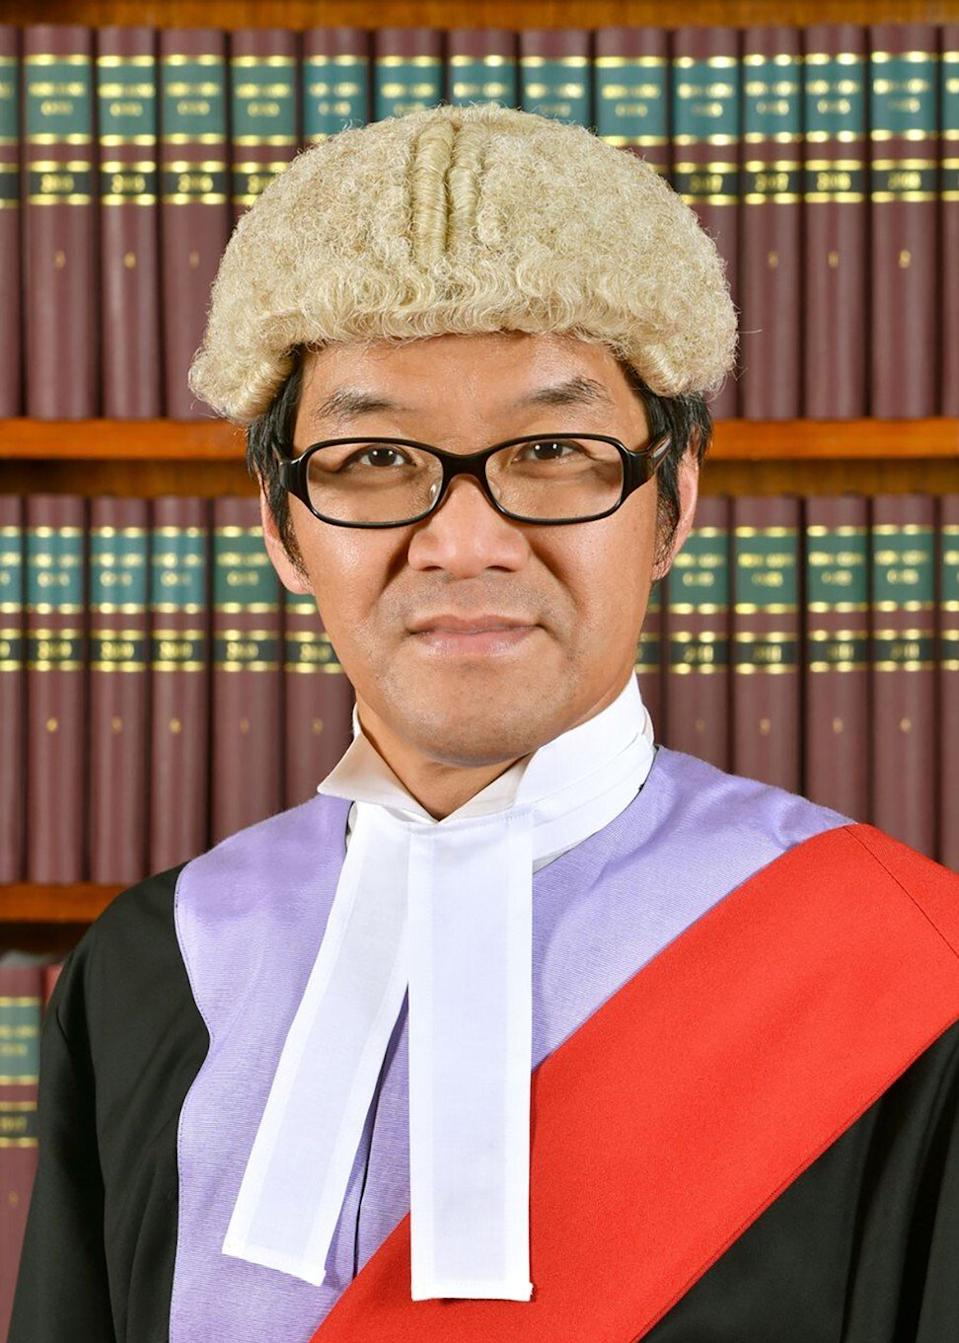 District Judge Kwok Wai-kin. Photo: Handout